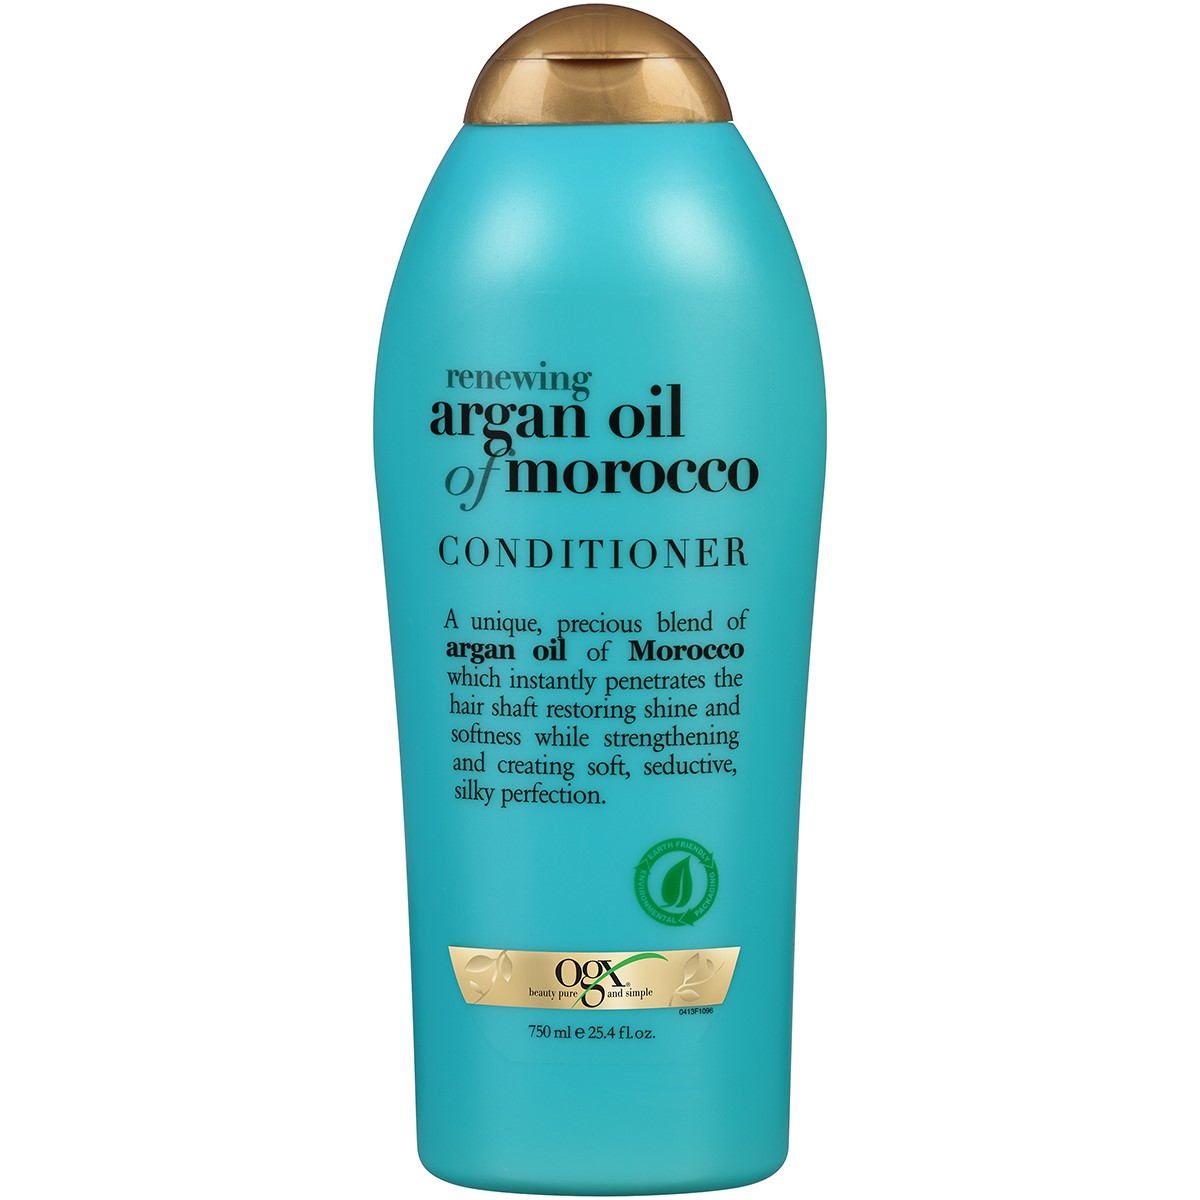 OGX Renewing Argan Oil of Morocco Conditioner, 25.4 Oz